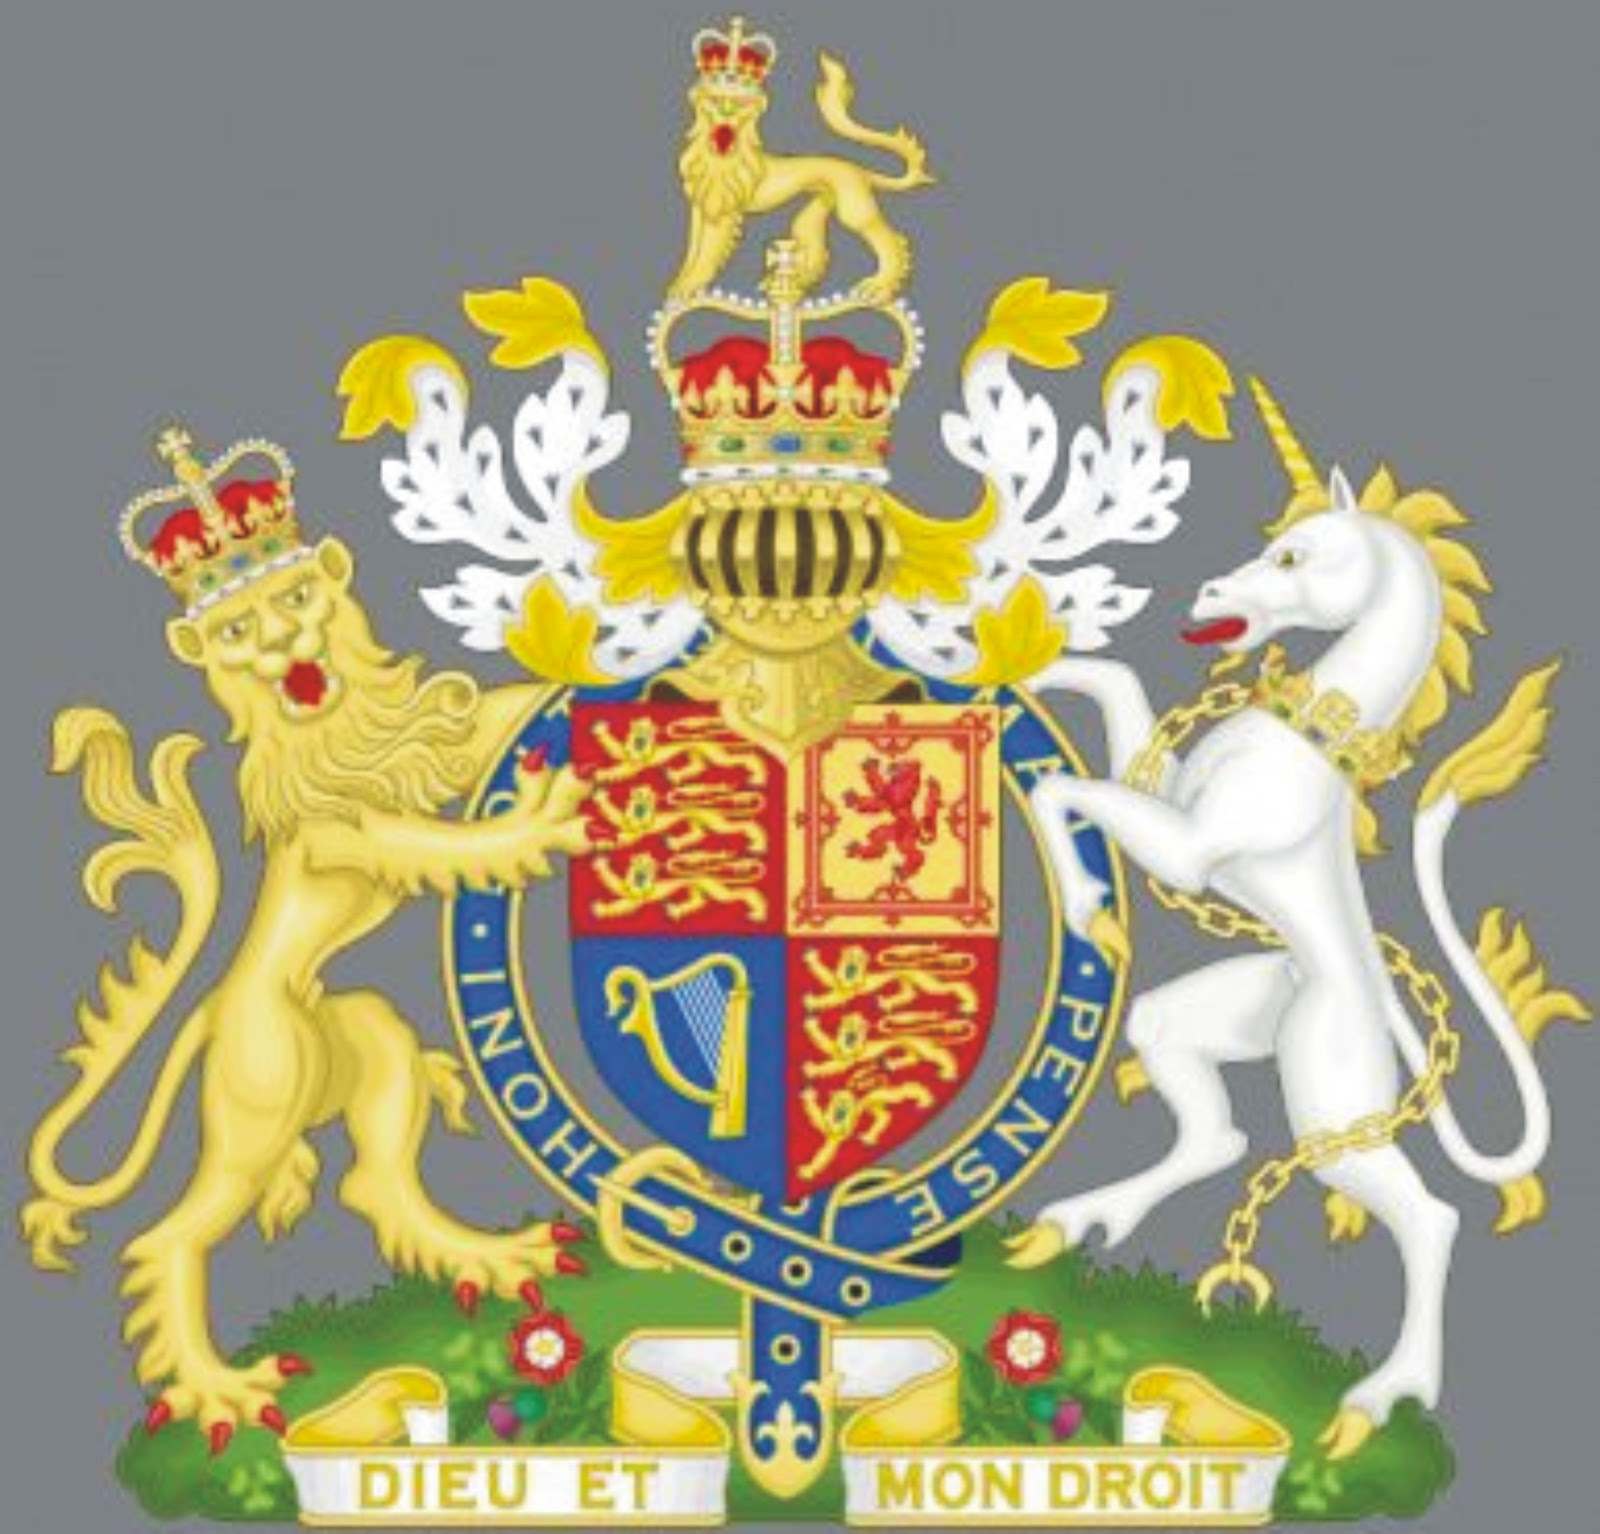 The language of once upon a time the unique unicorn today the unicorn and the lion are reconciled on the british coat of arms the unicorn as a symbol of goodness and honor in women and the lion as a symbol buycottarizona